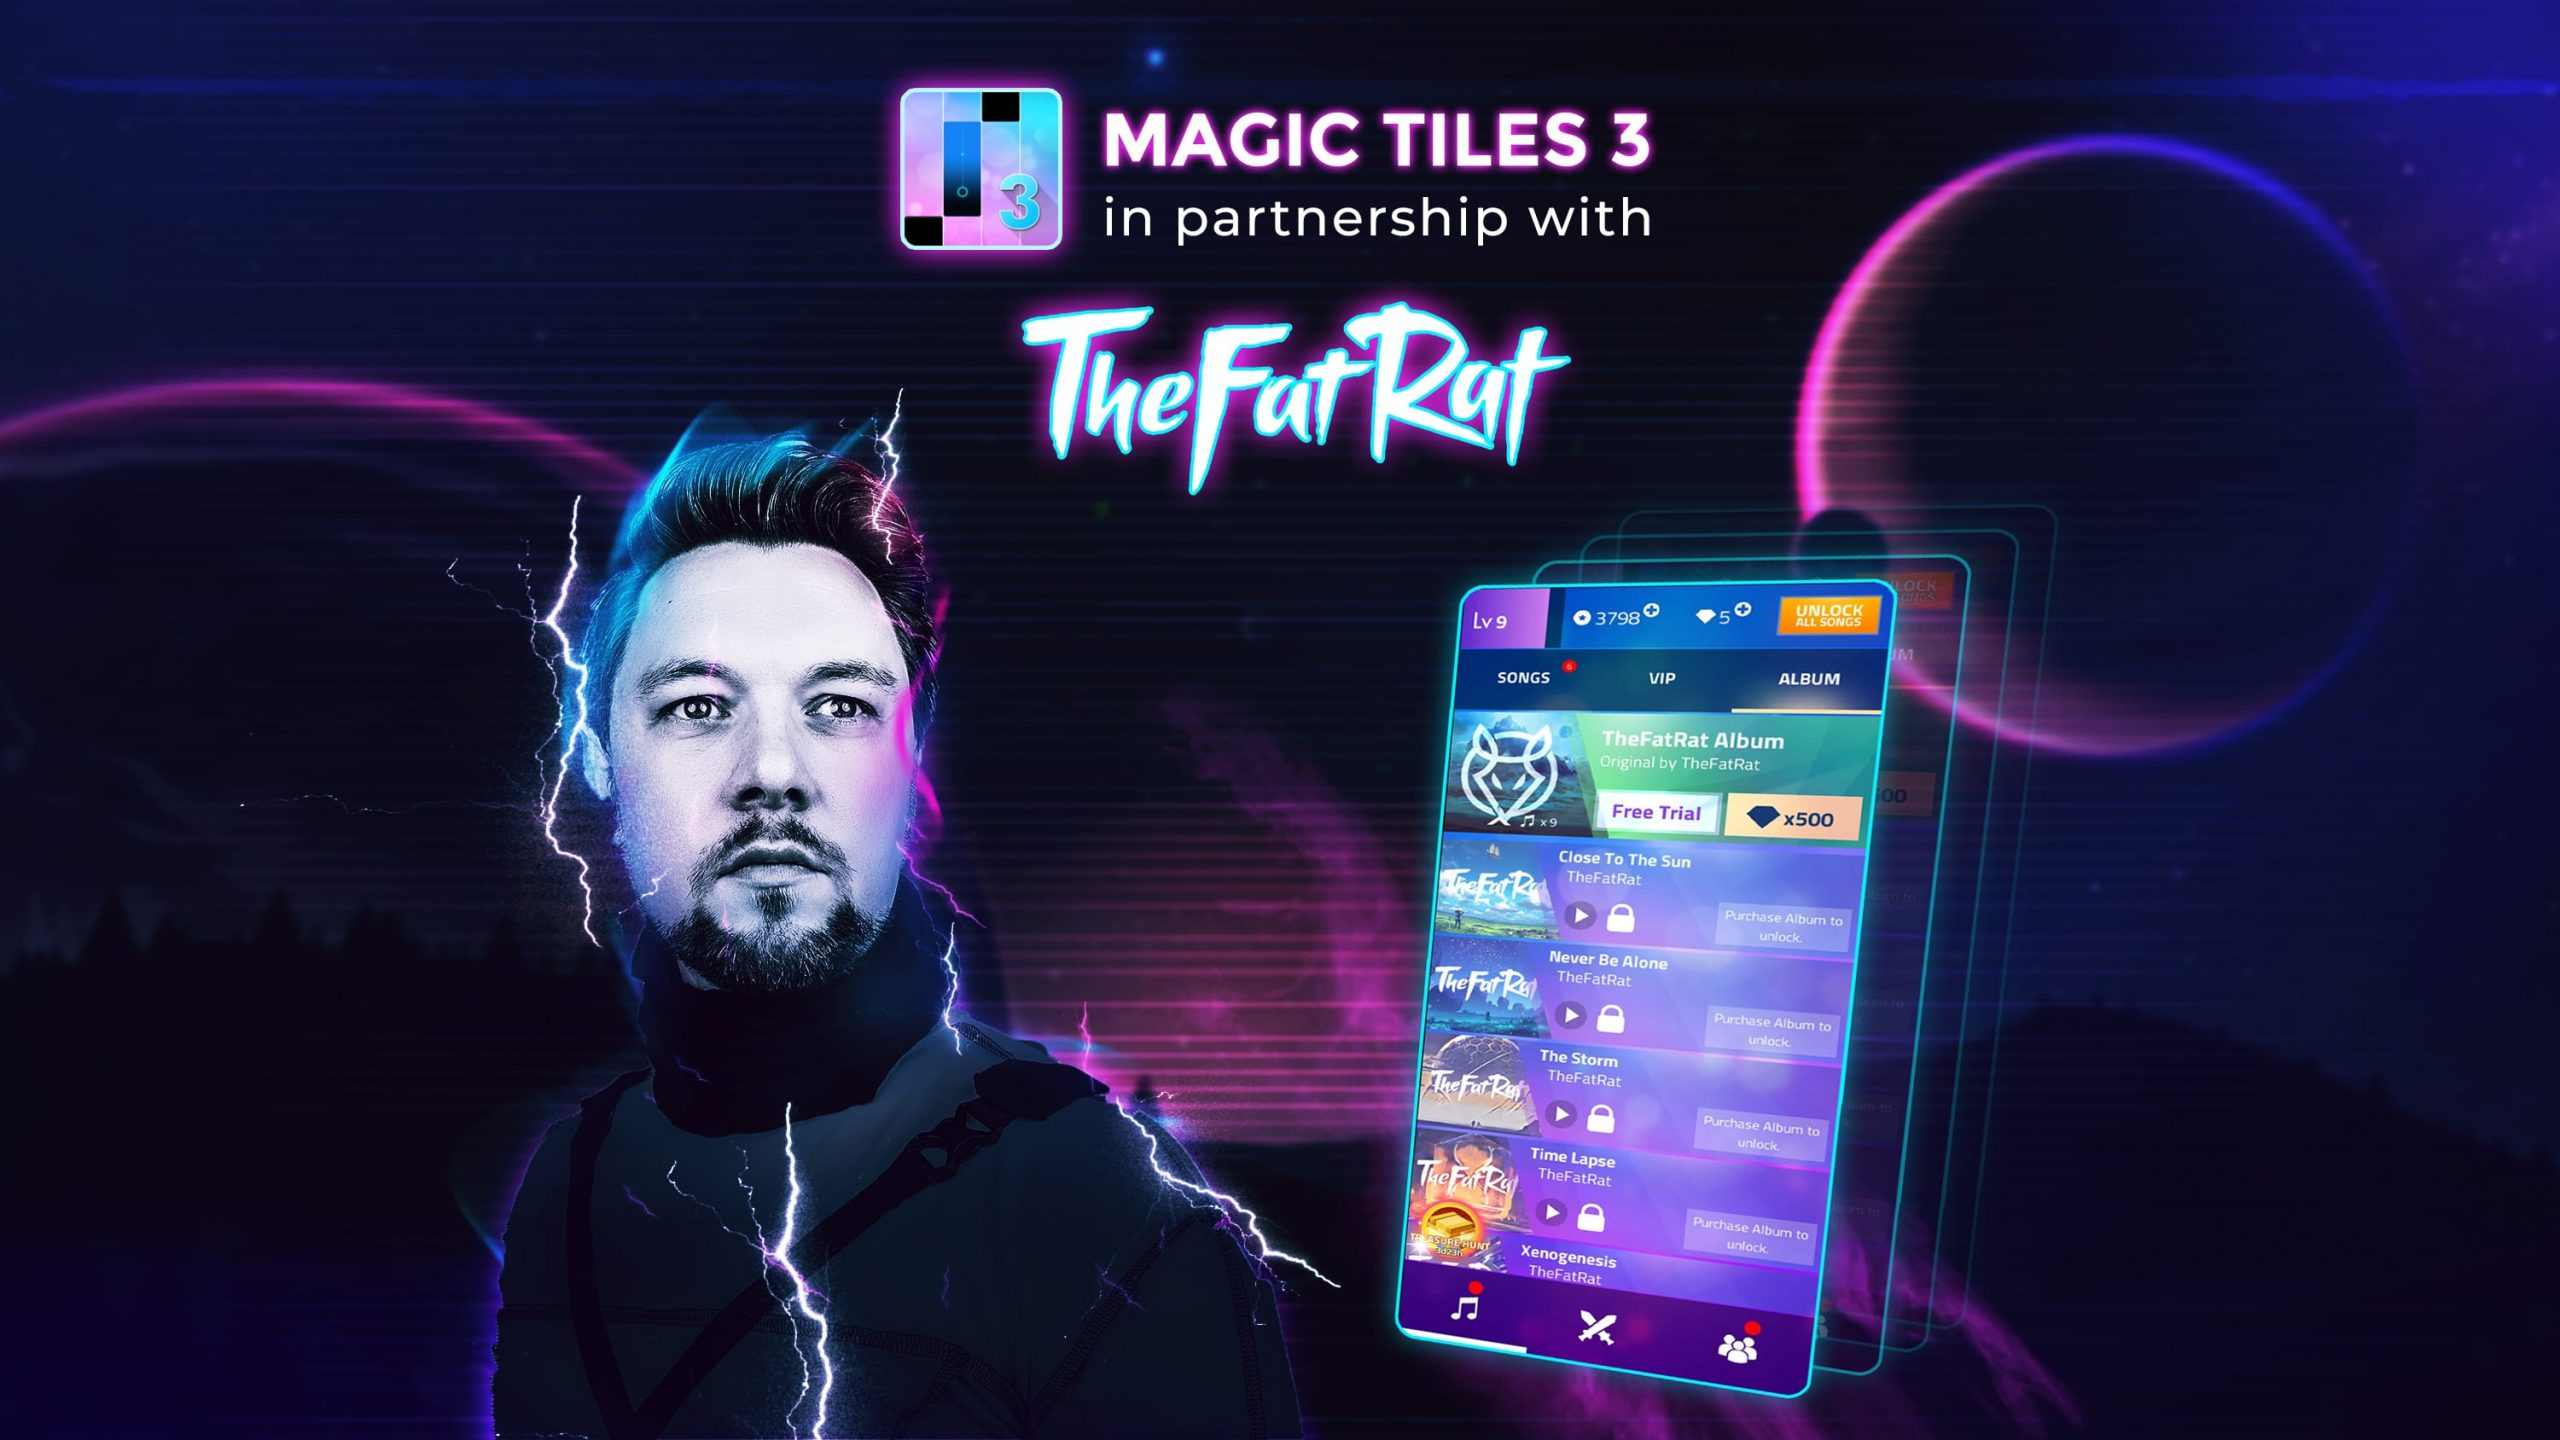 TheFatRat teams up with Amanotes to feature music in Magic Tiles 3 game